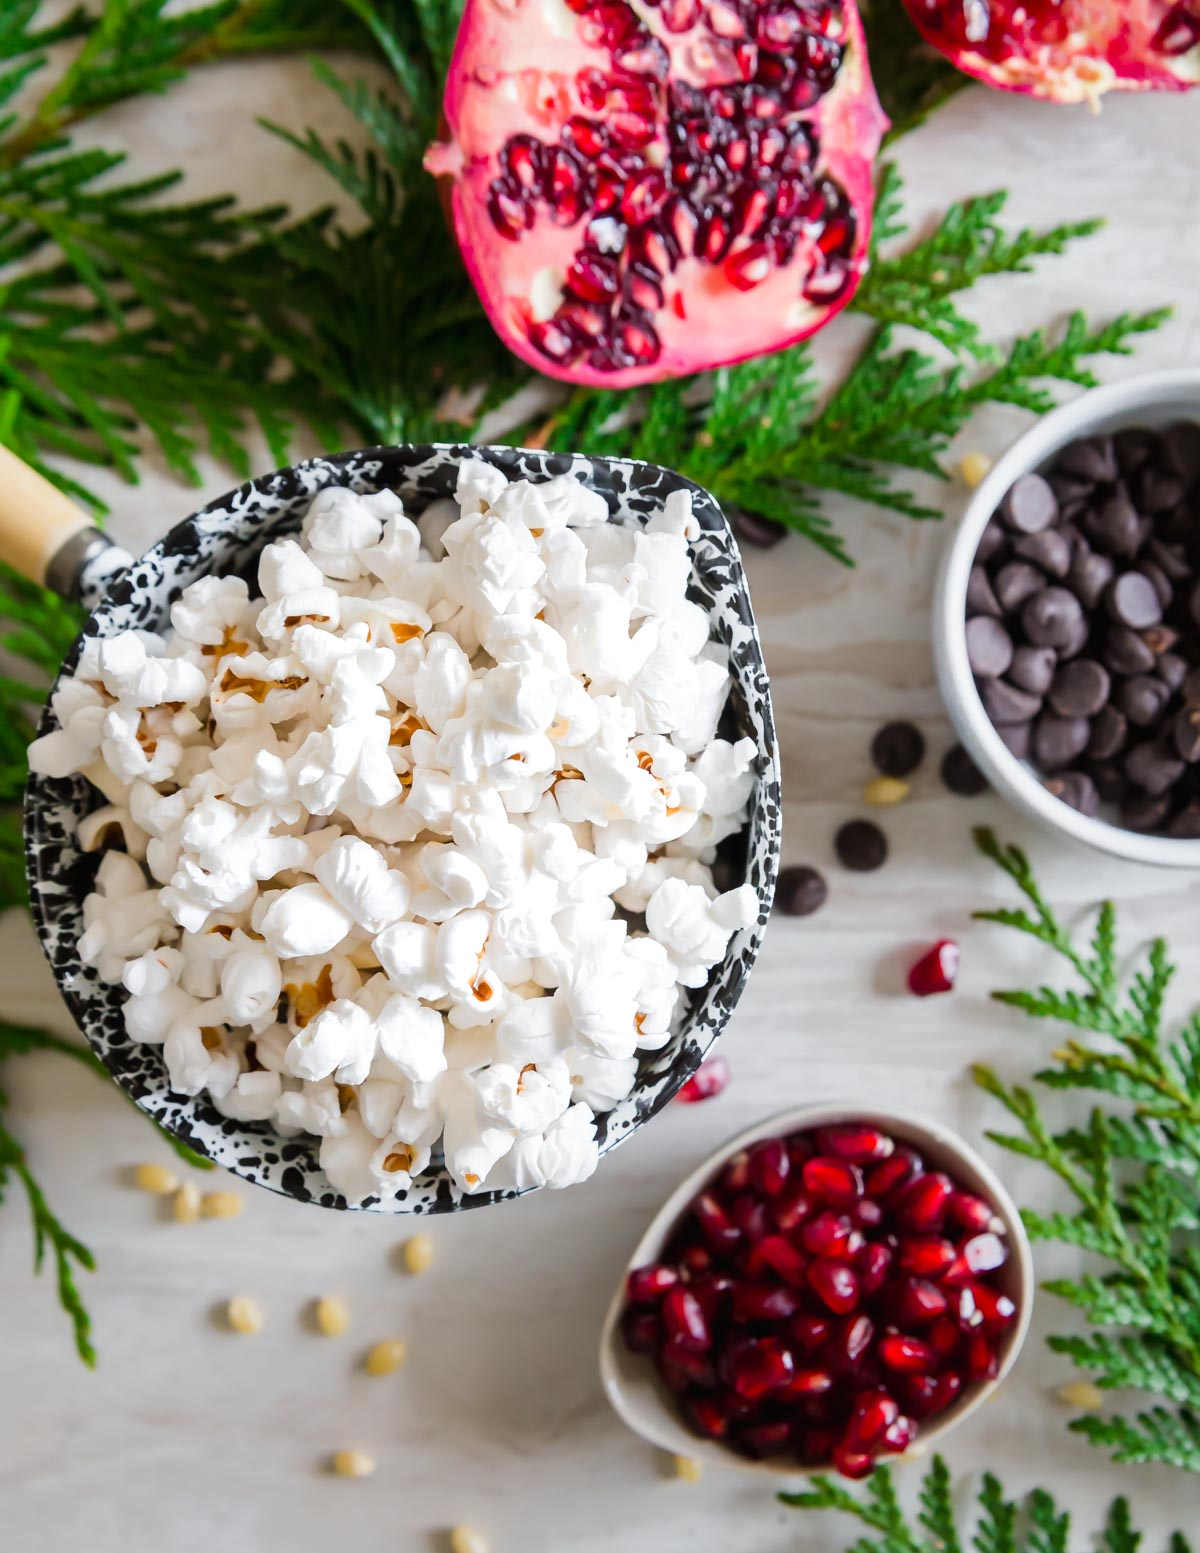 Freshly popped corn in coconut oil is tossed with bright and festive pomegranate, dark chocolate chips and a dusting of lemon zest.